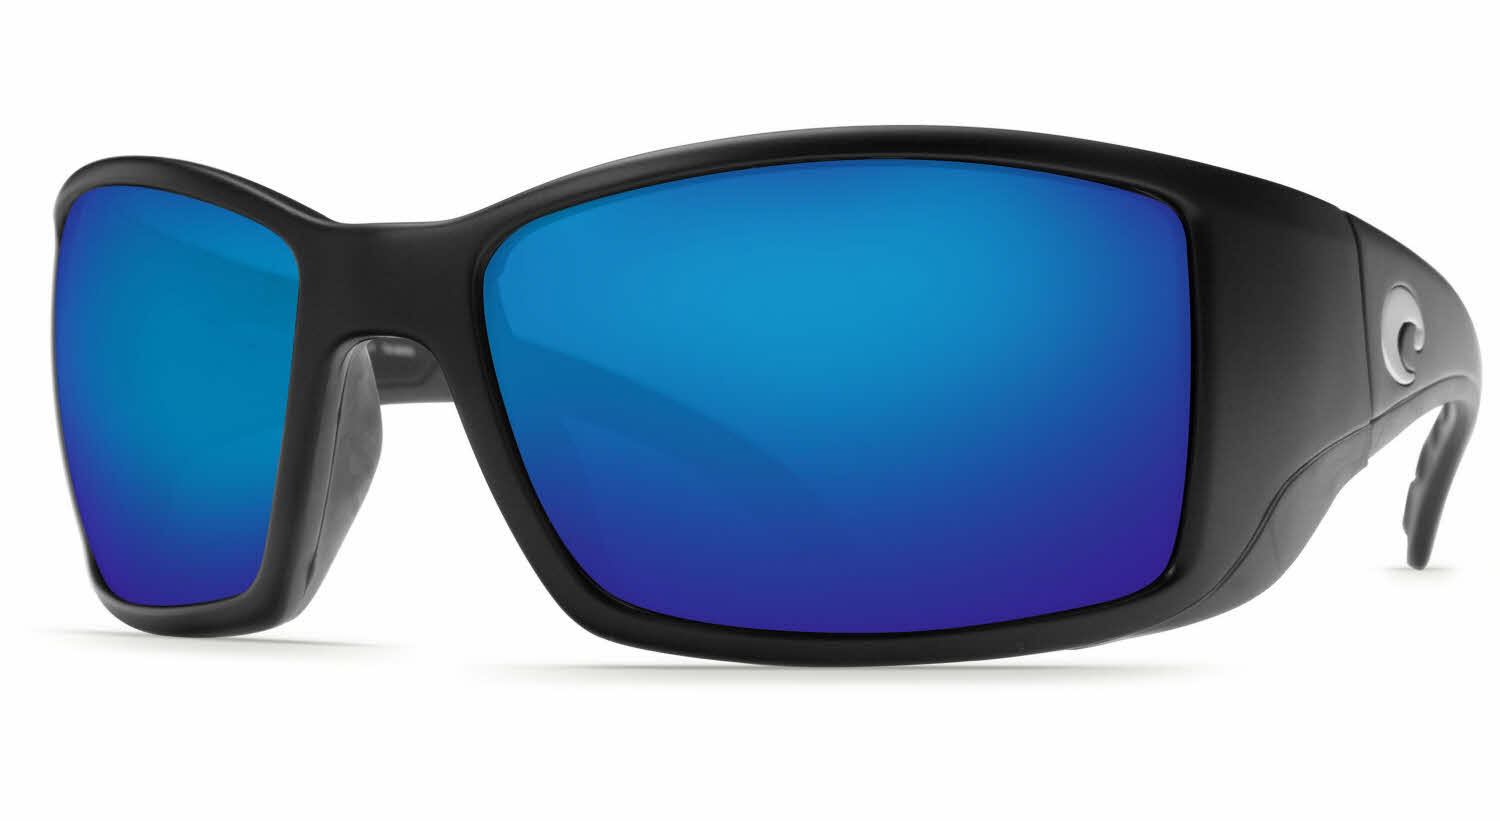 fe298124f56 Costa Blackfin Sunglasses